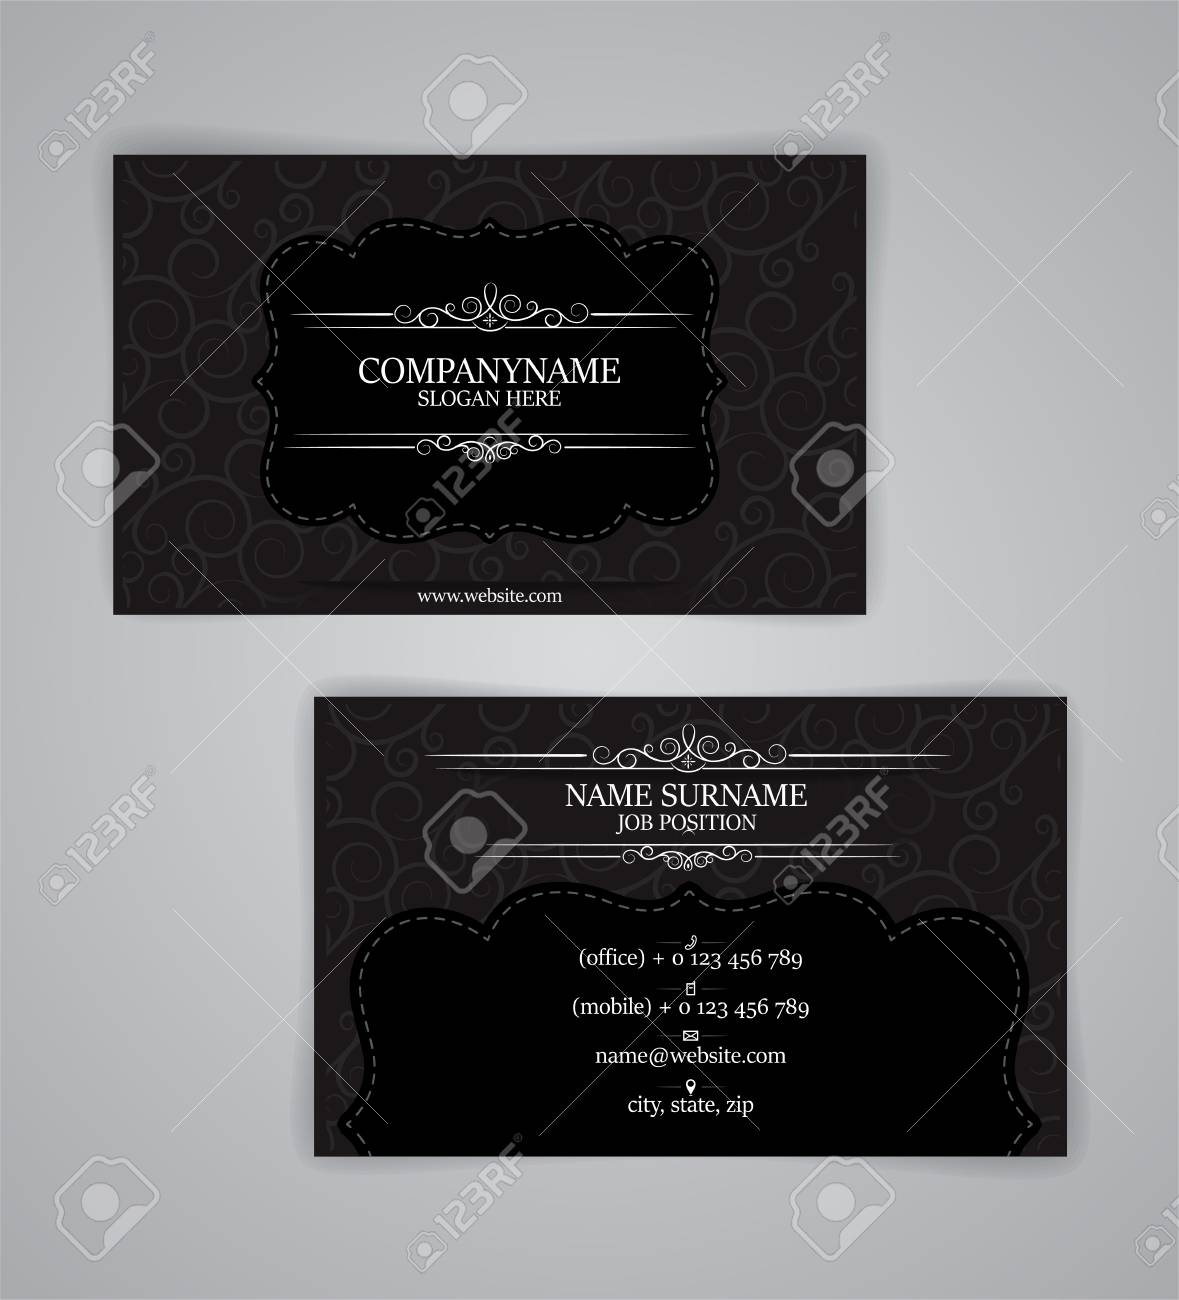 Vintage business cards template illustration vector 10 royalty free vector vintage business cards template illustration vector 10 flashek Images